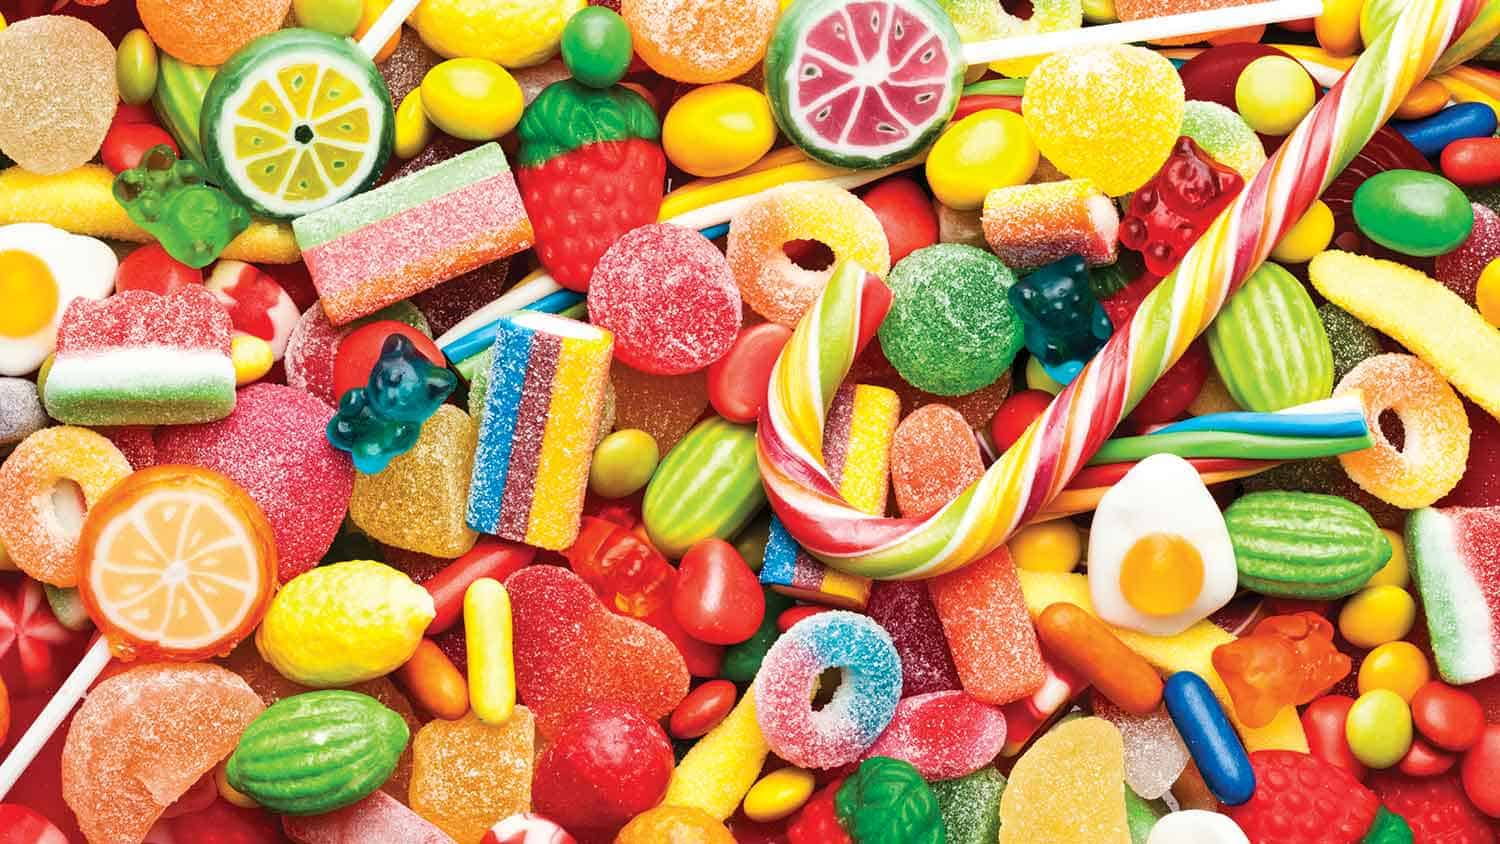 A variety of brightly coloured sugary sweets spread out on a table